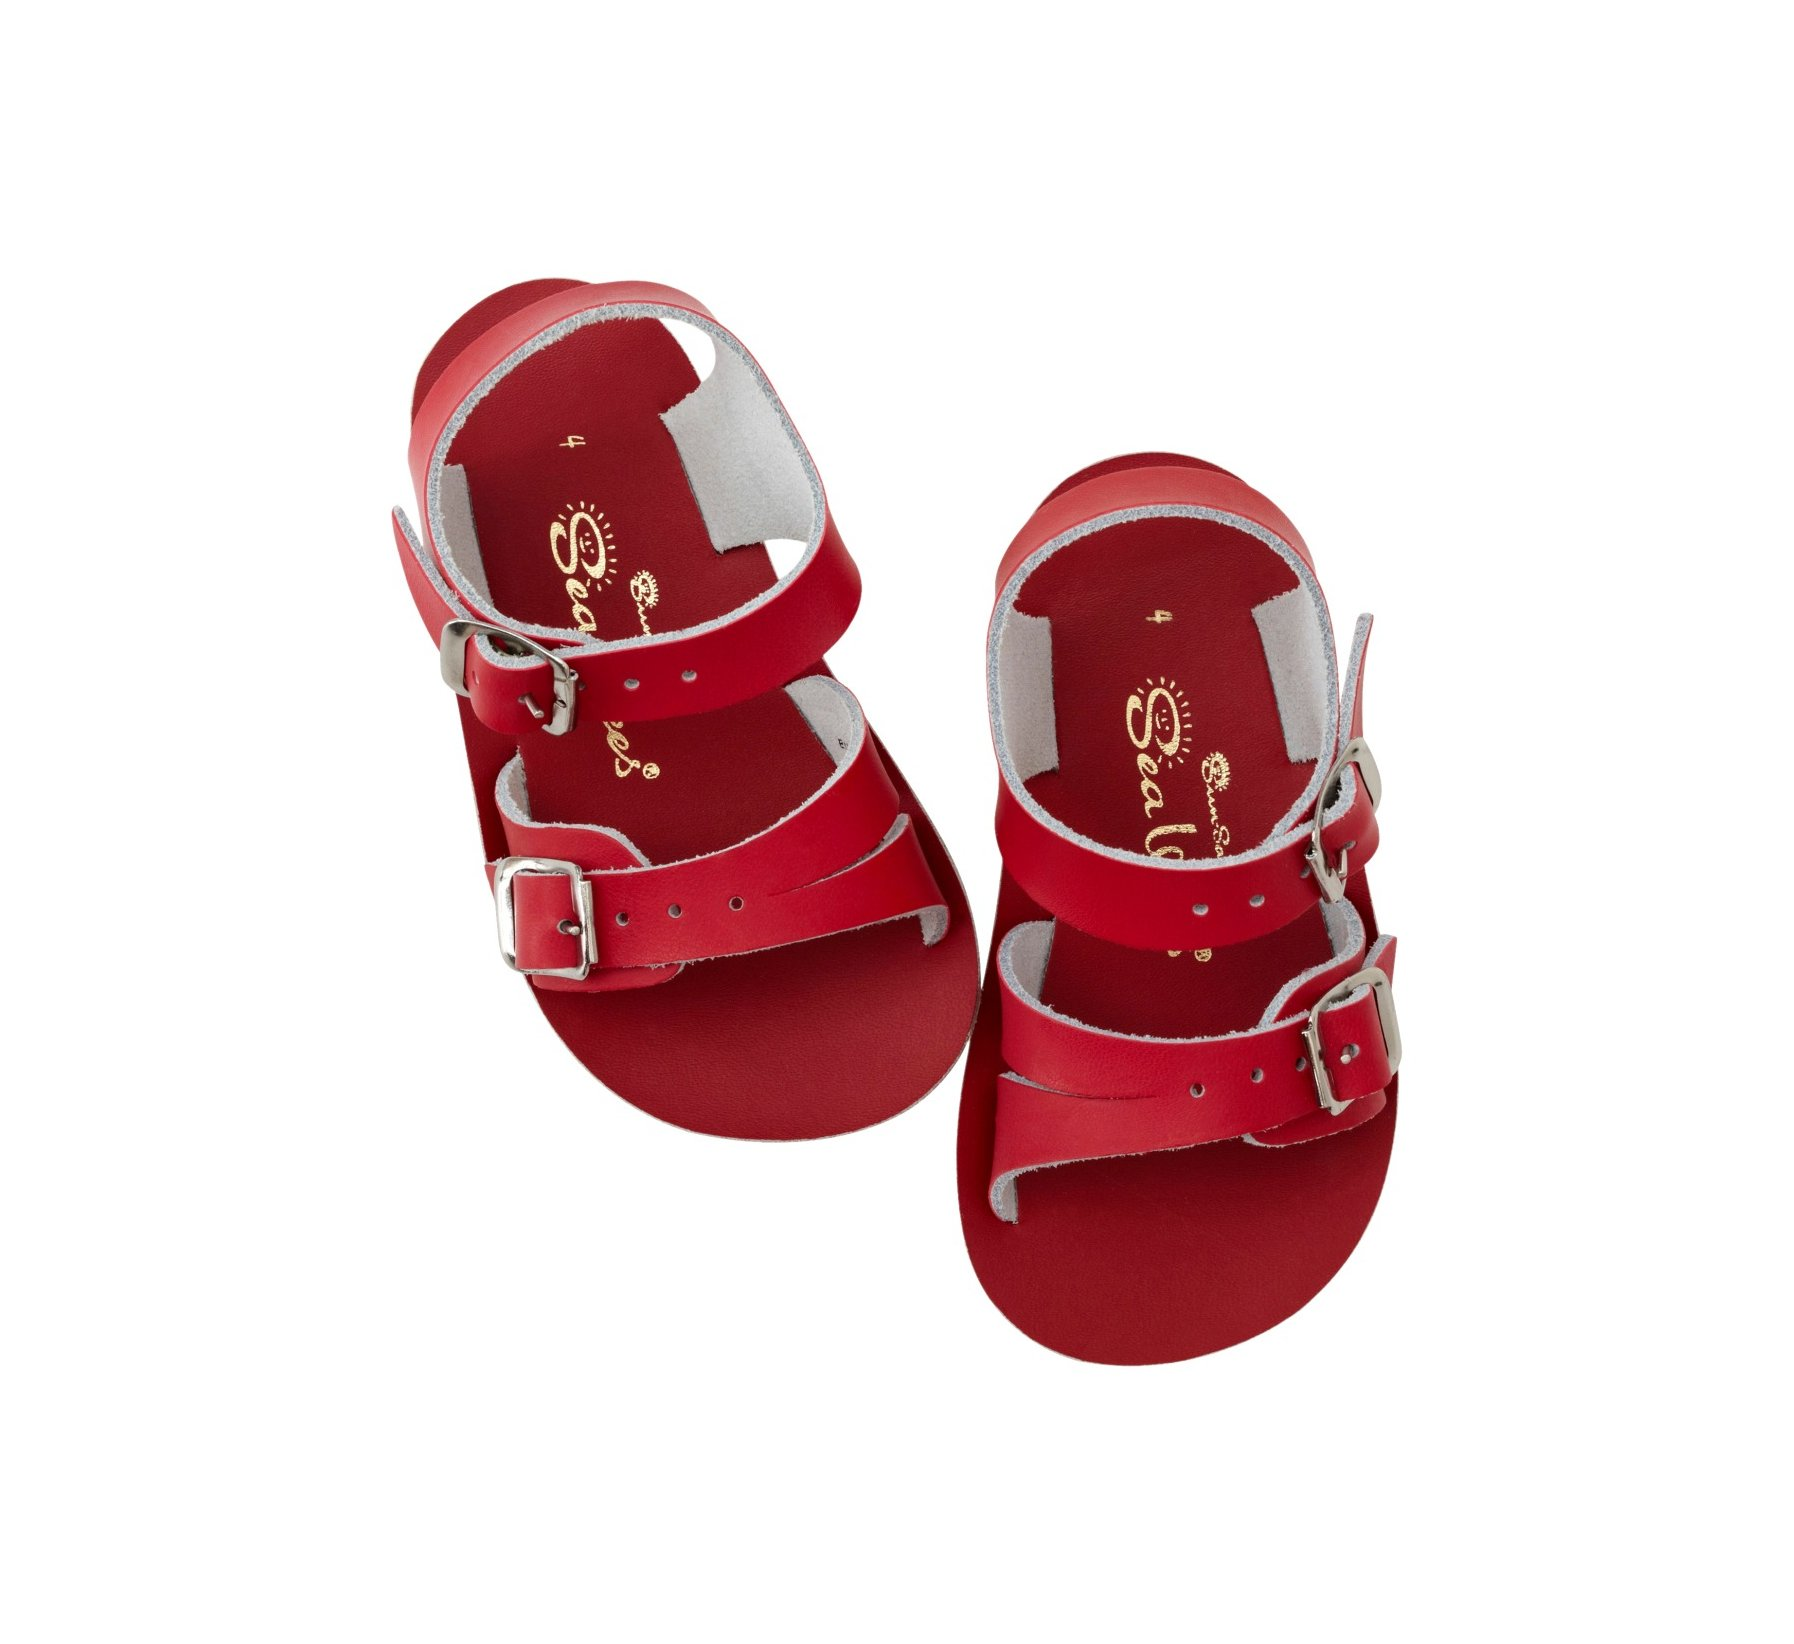 Seawee Red - Salt Water Sandals